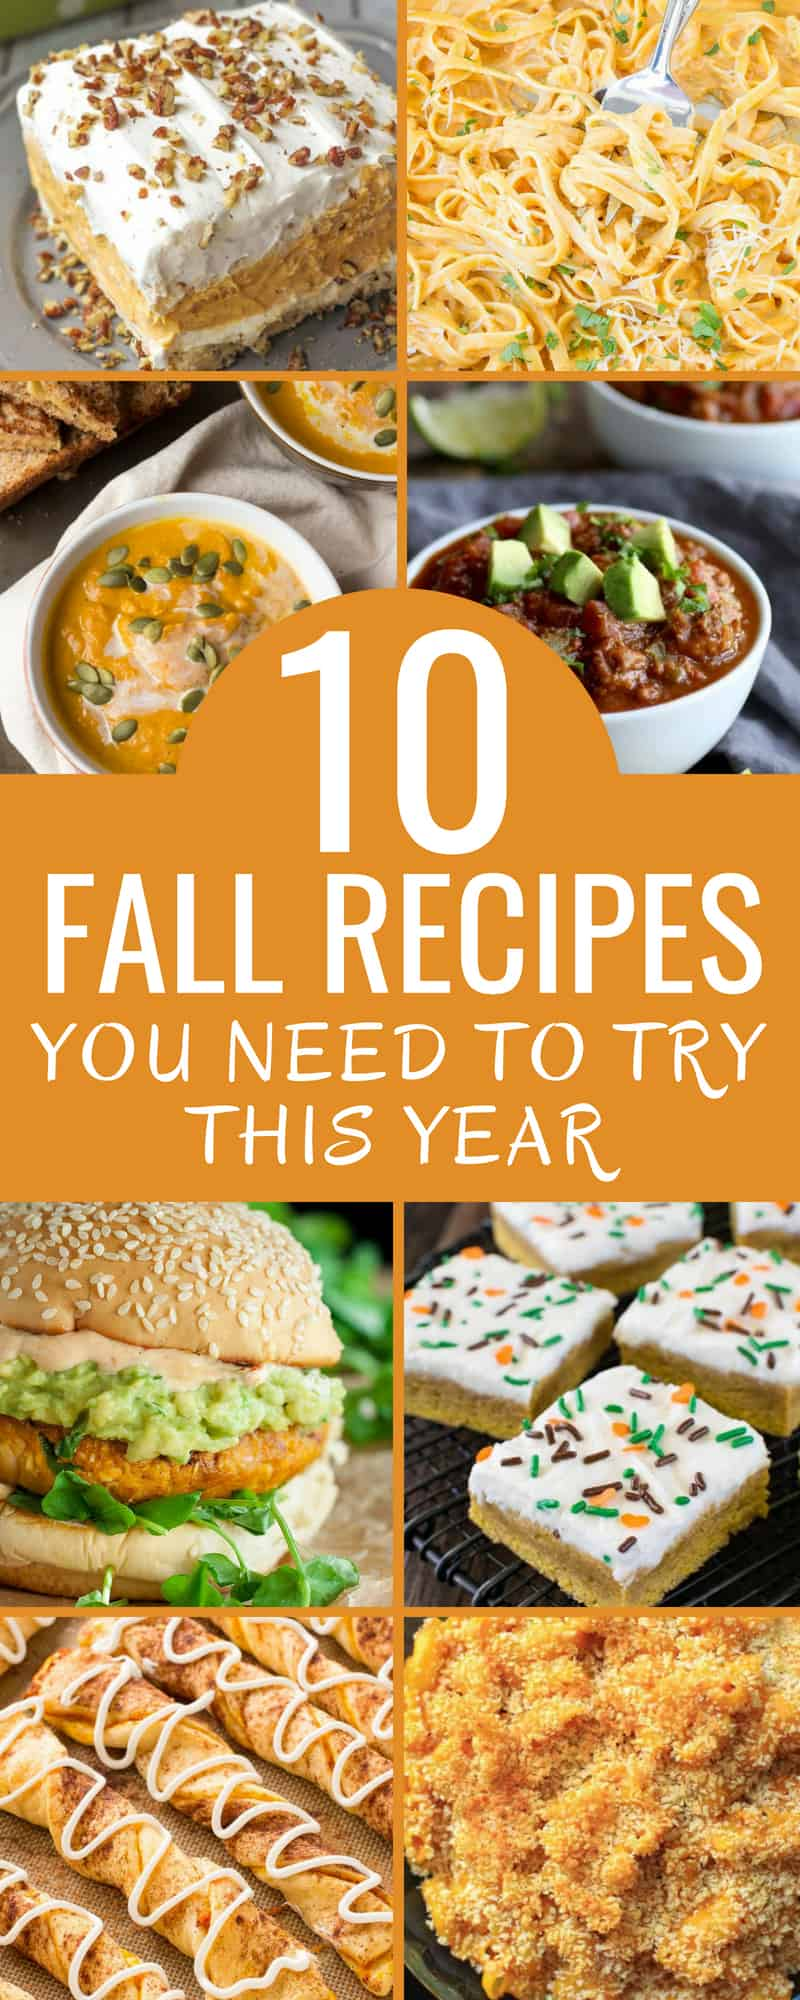 These 10 easy pumpkin and fall recipes are AMAZING! If you are a fall loving, pumpkin spice drinking and quick recipe lover you have to check out this article! From slow-cooker to over-night oats, to yummy dessert bars. These fall recipes are delicious! #PumpkinRecipes #PumpkinSpice #FallRecipes #SlowCooker #BudgetMeals